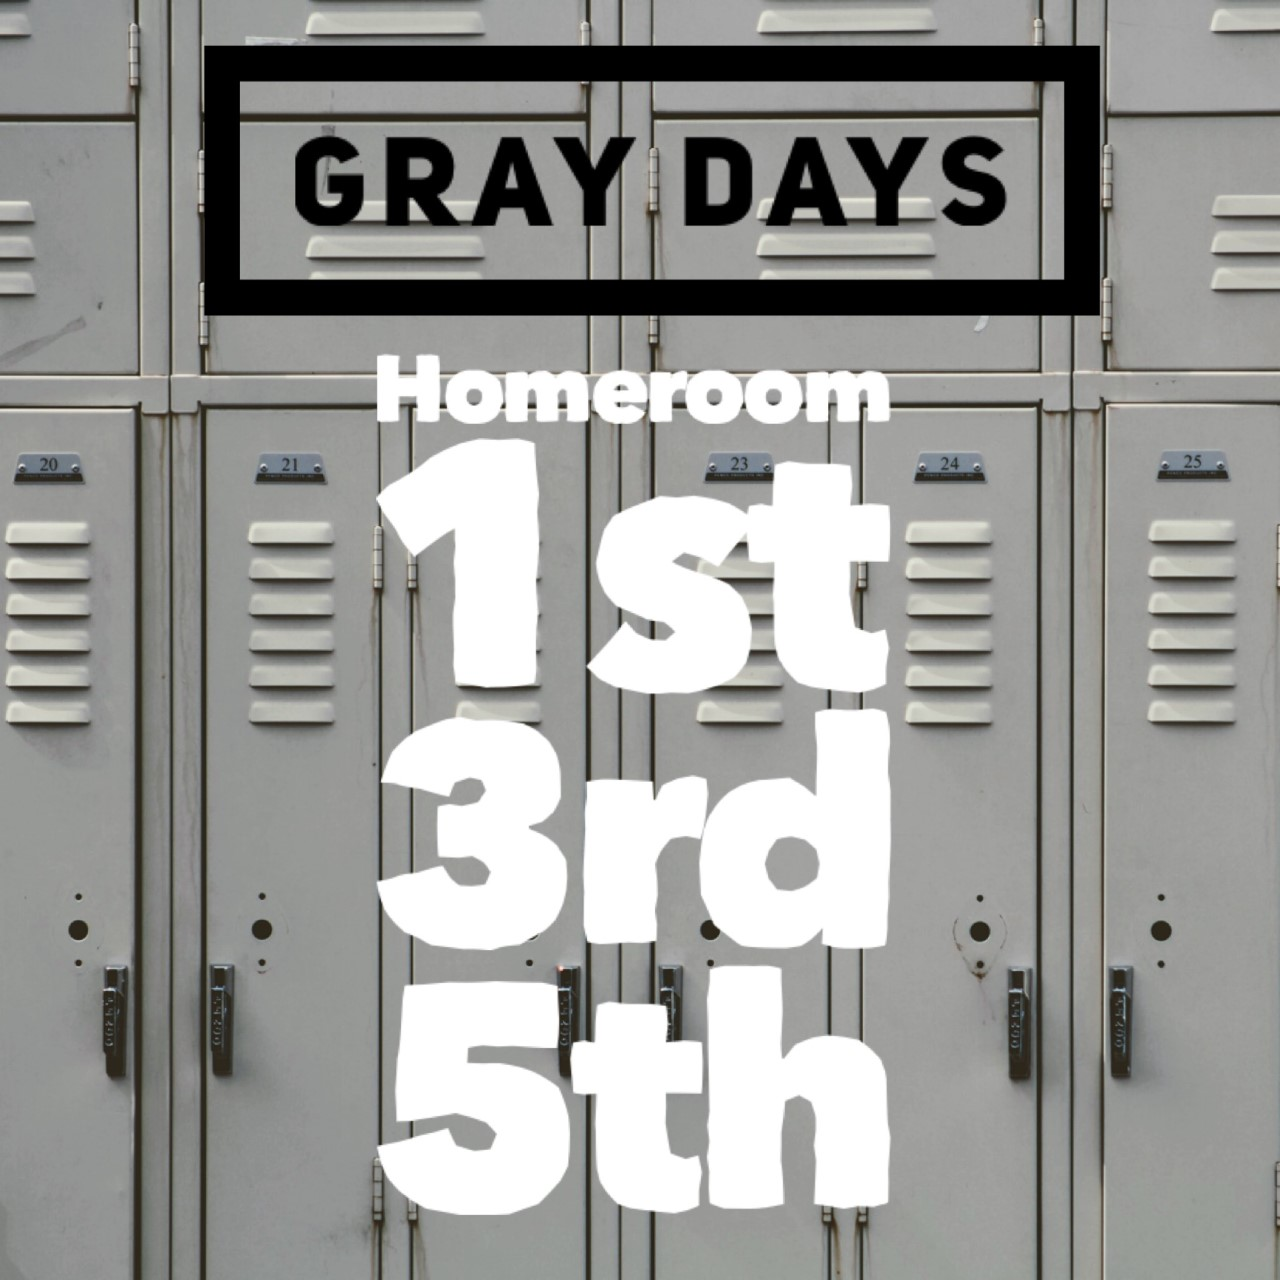 Gray day 1st 2rd 5th period